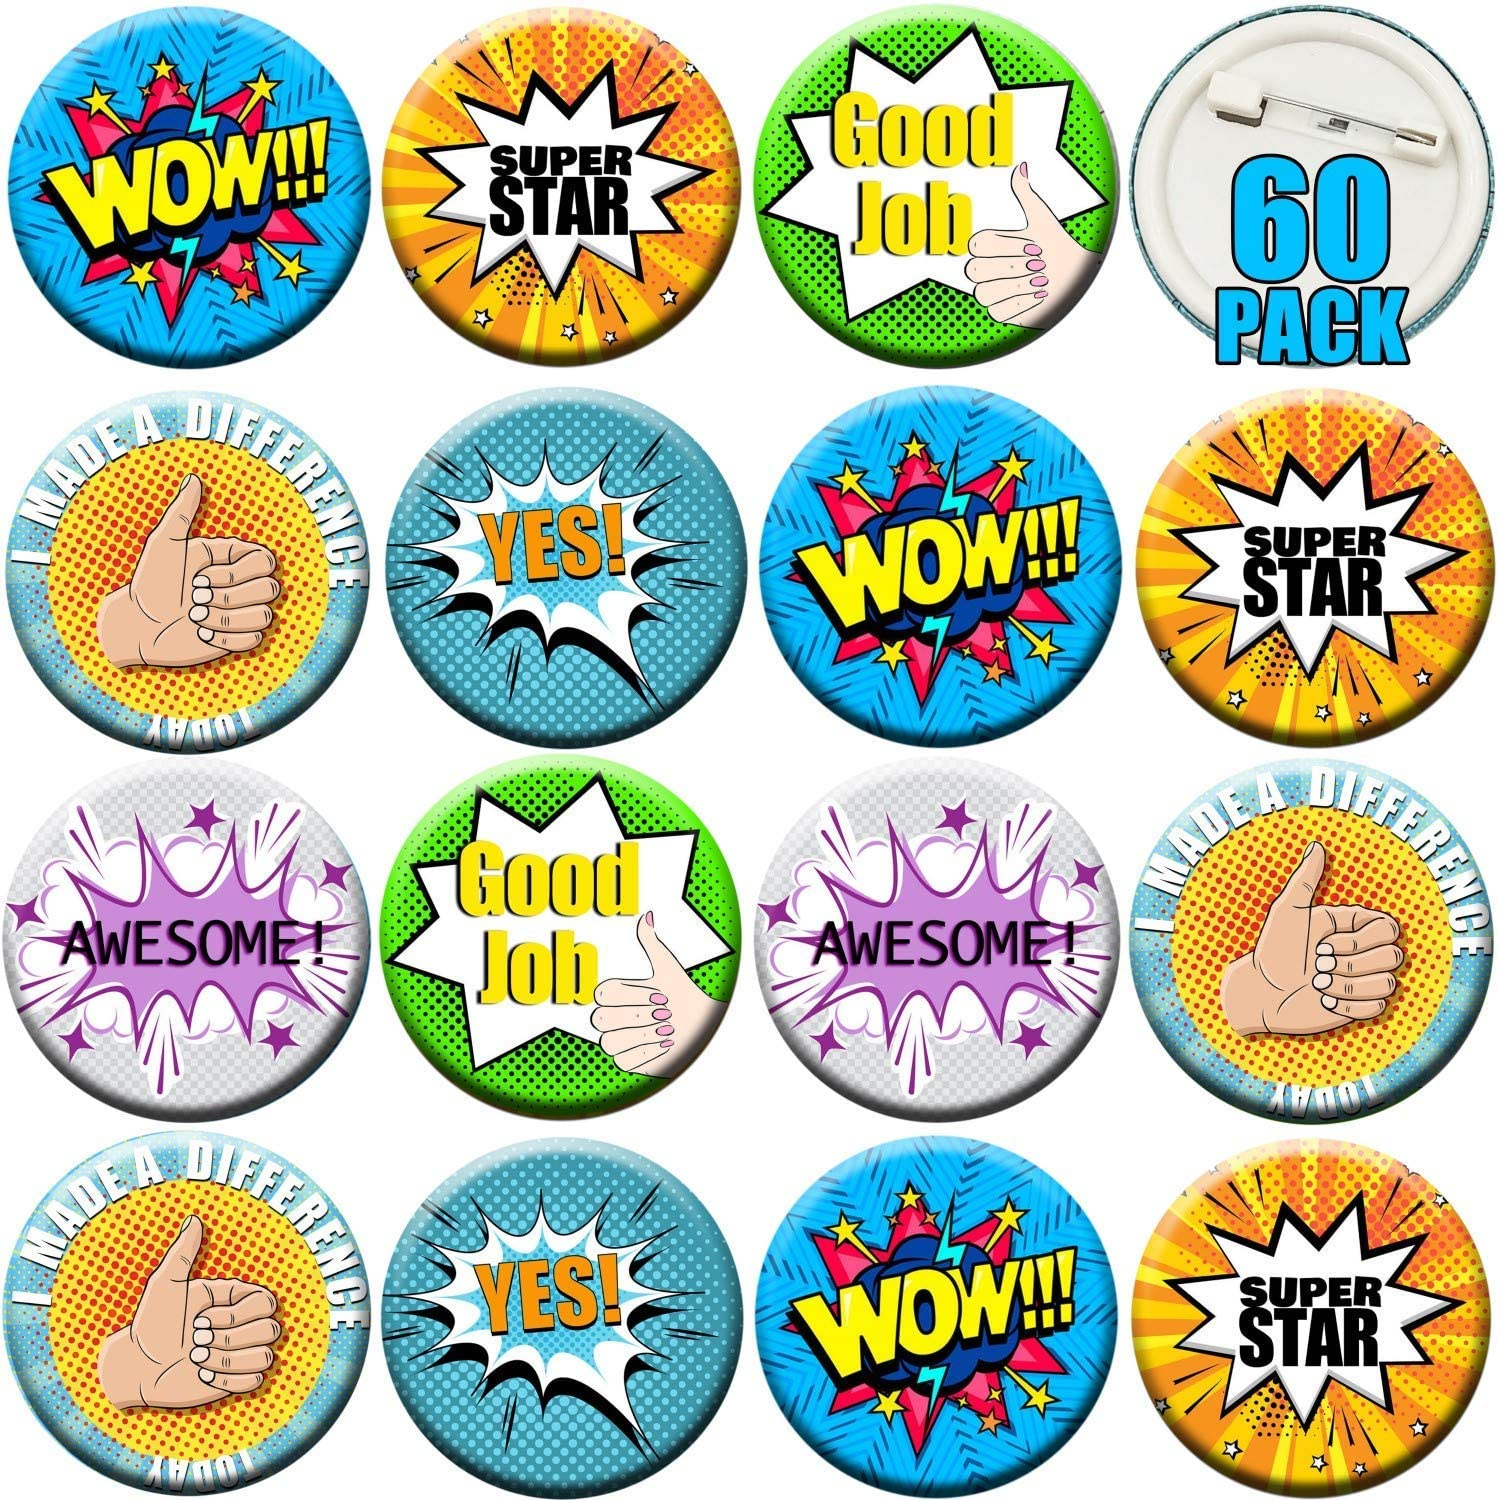 60PCS Reward Button Pins - Pinback Buttons Brooch Lapel Printed Positive Word, Recognition Button Round Pins as Incentive, Motivation Awards for Kids, Employees, Students, Co-Workers, 6 Style